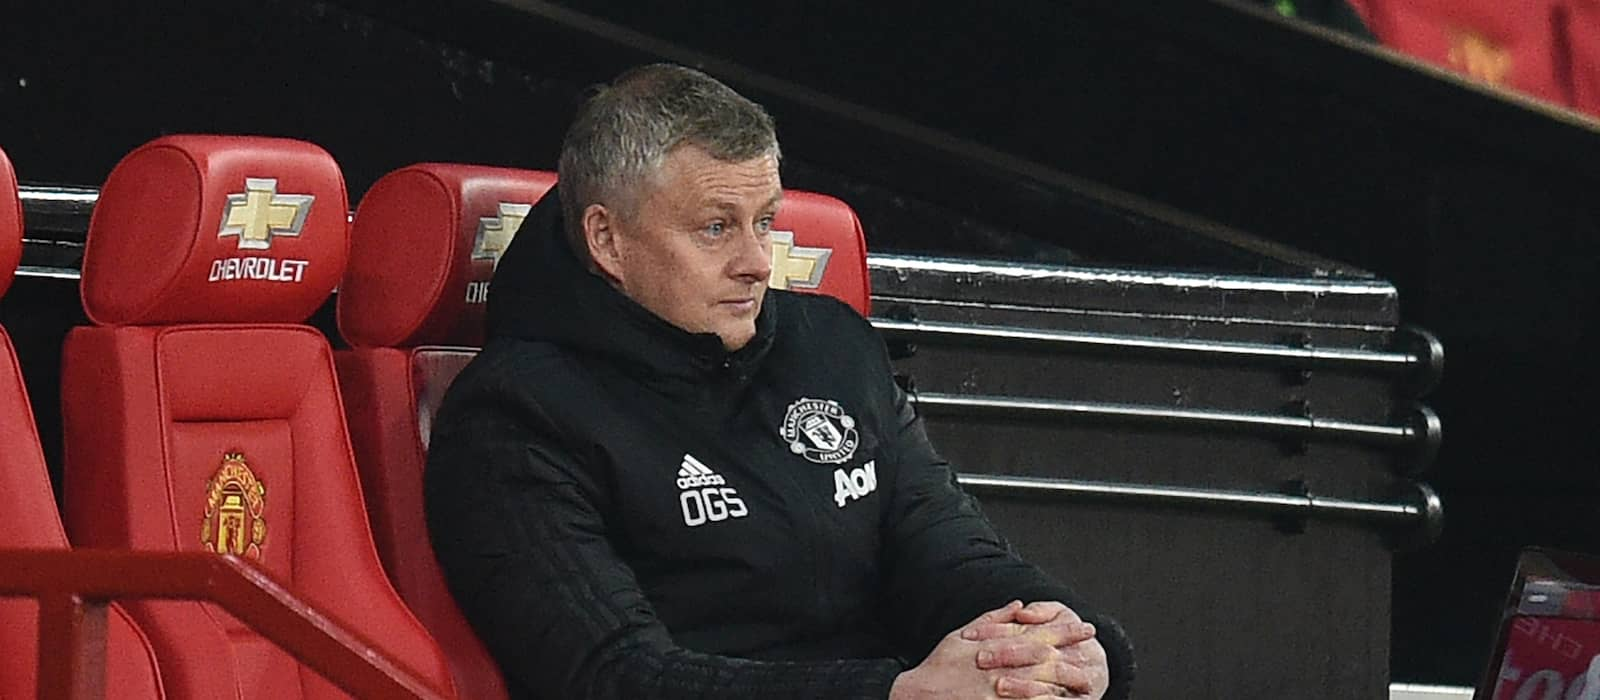 Ole Gunnar Solskjaer confirms three Manchester United stars are injured